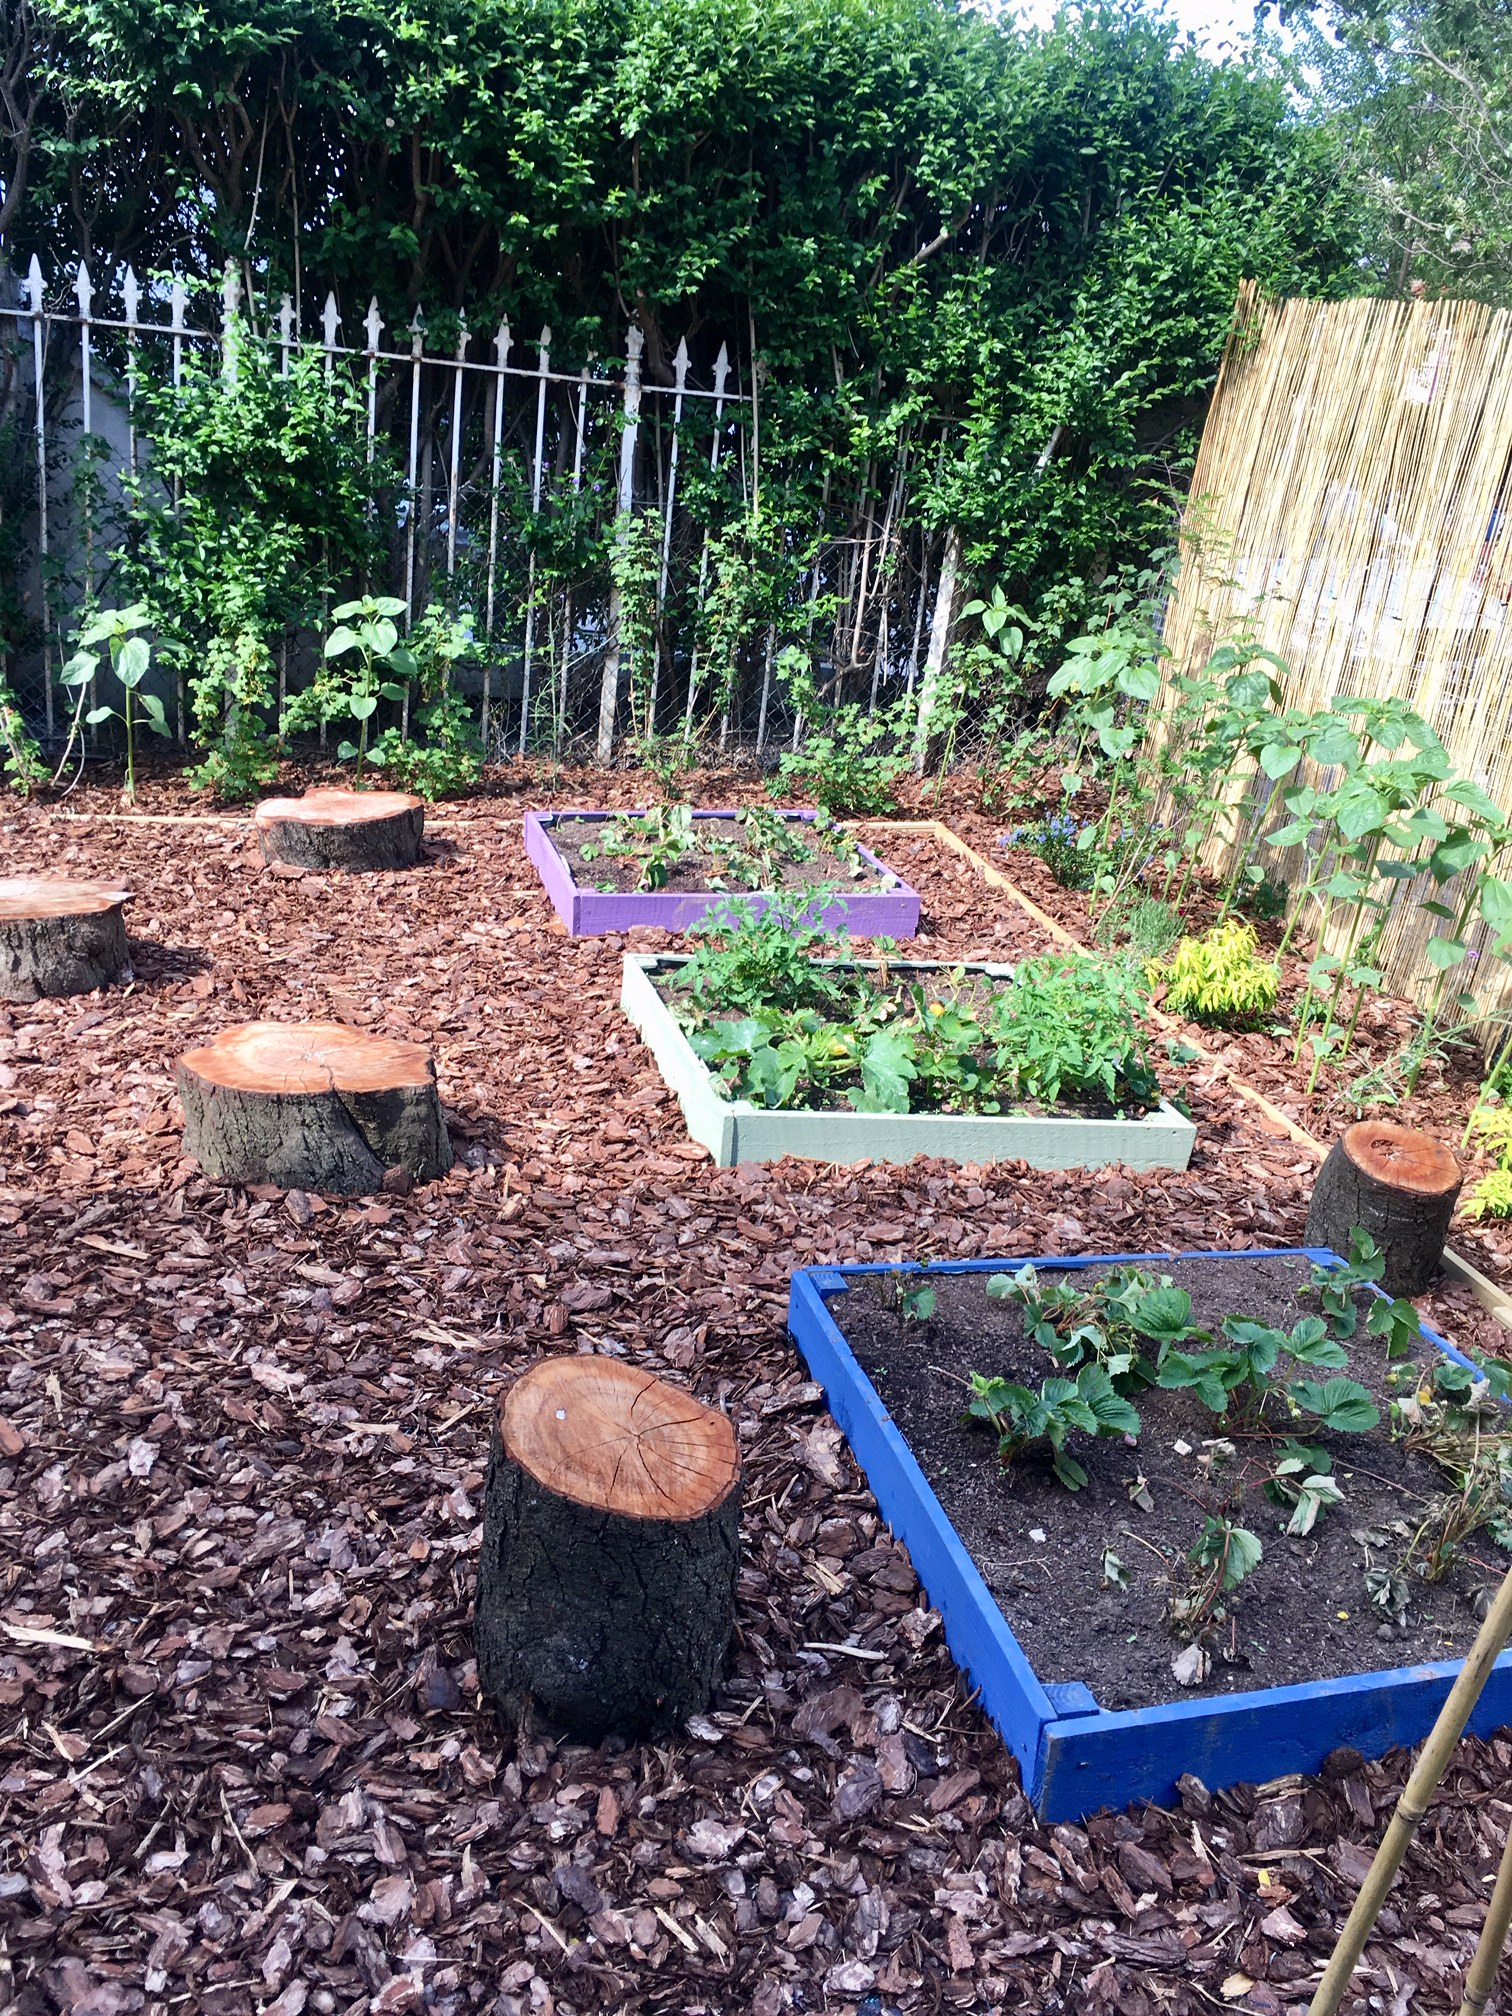 Our growing garden is full of herbs, strawberries and other exciting plants